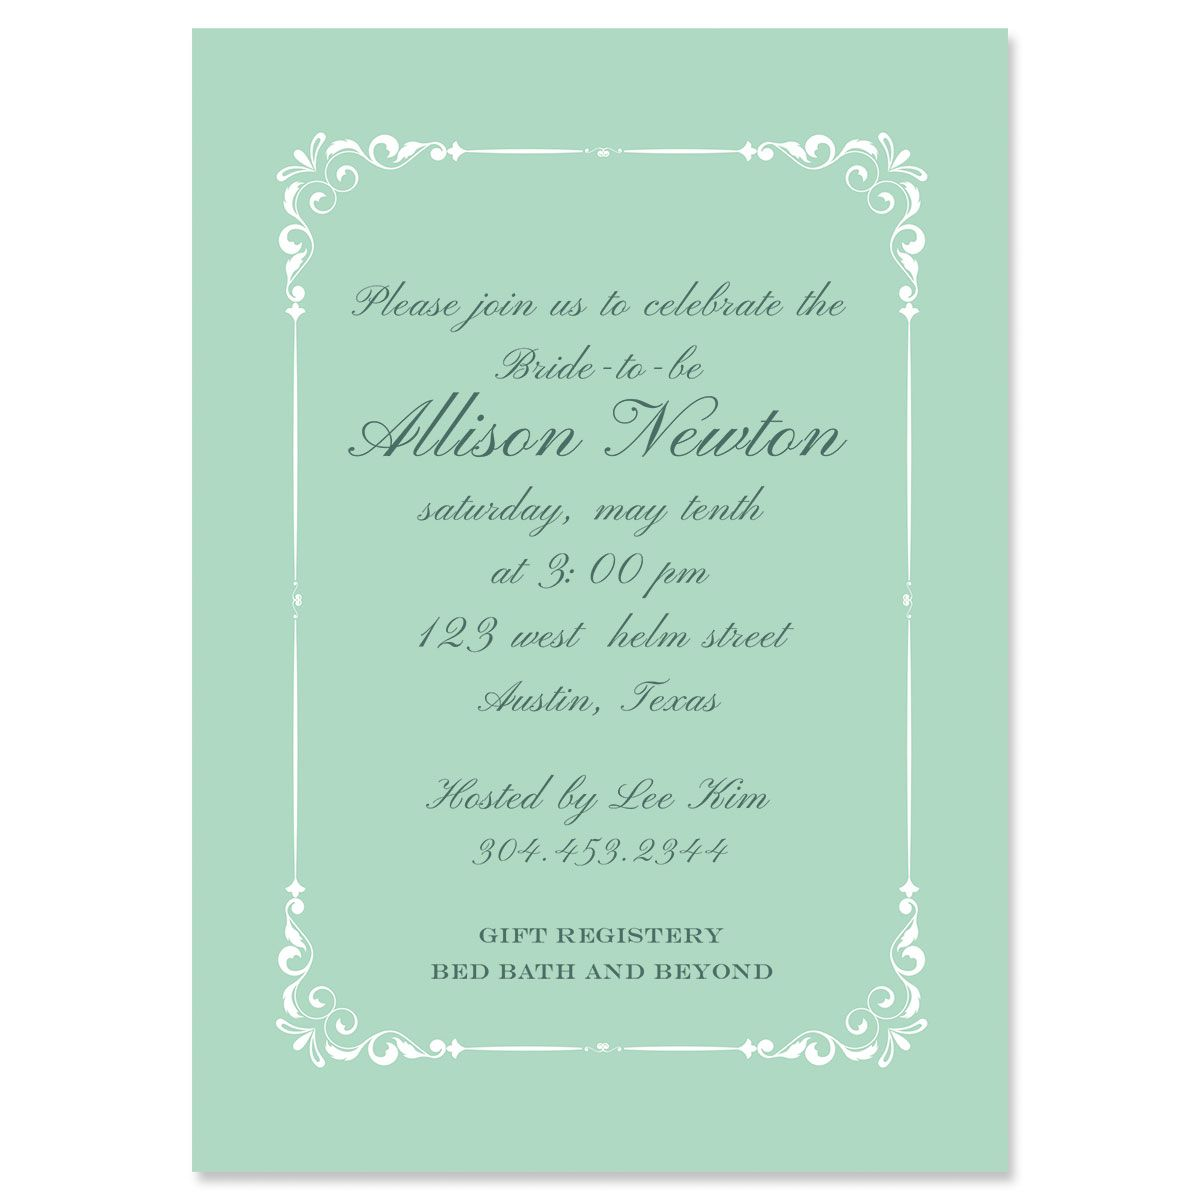 Personalized Splendor Invitations